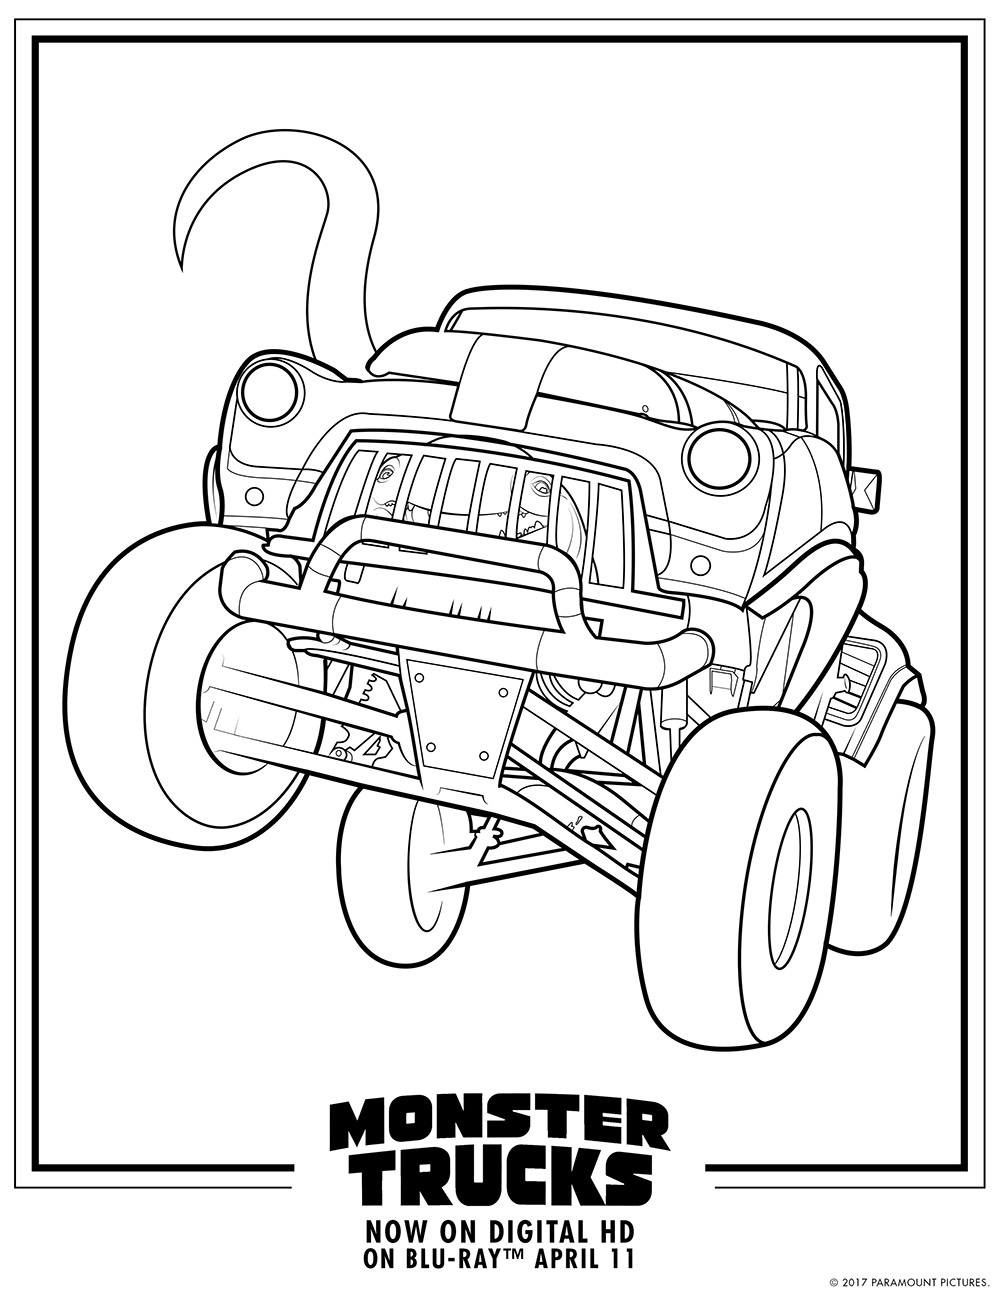 Monster Trucks Printable Coloring Pages on blu sheet